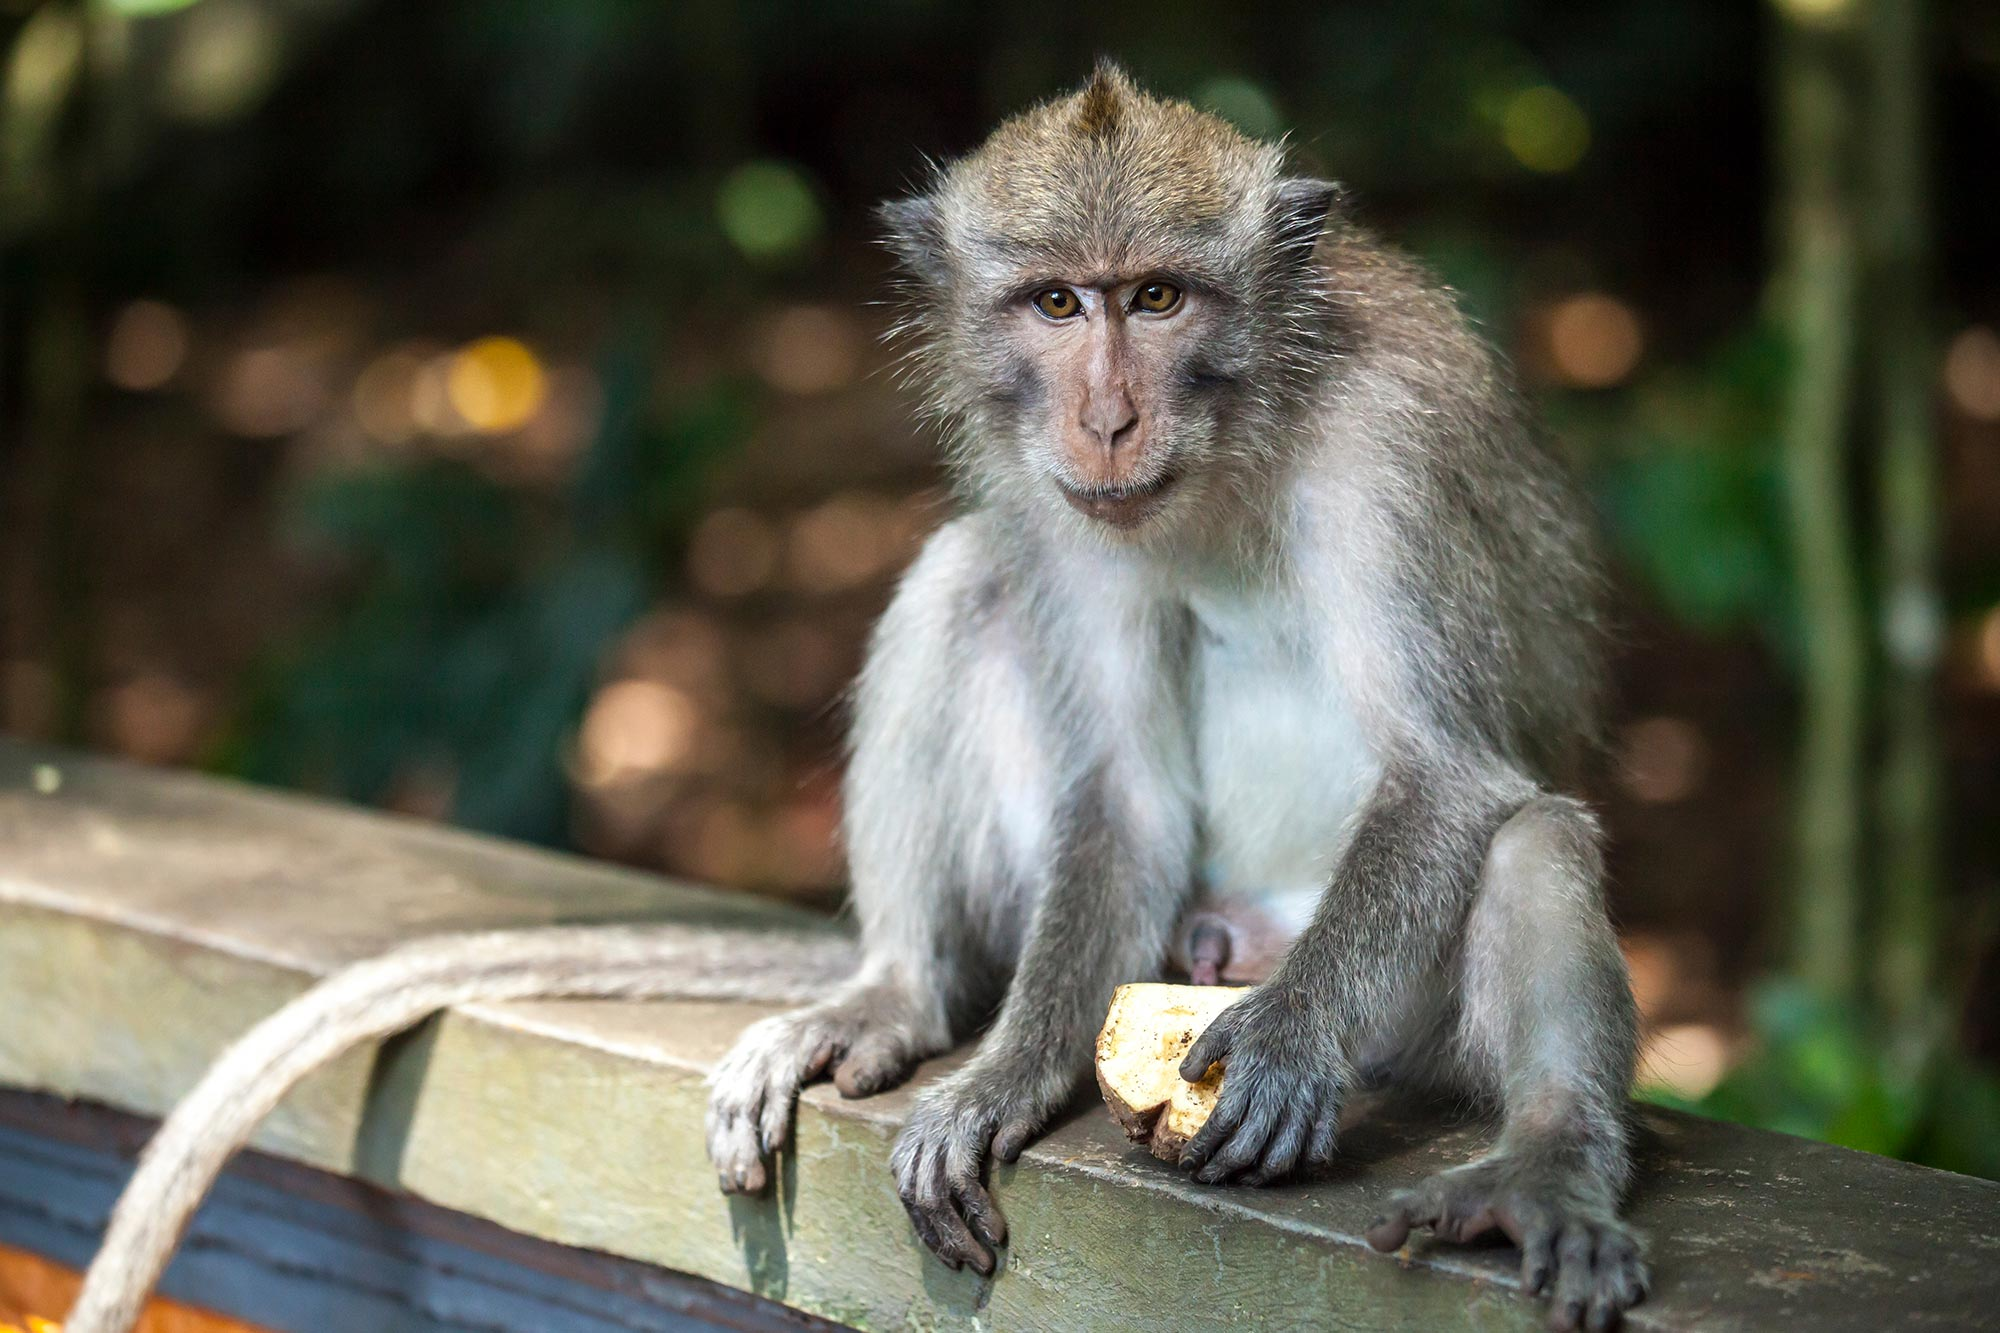 Brain Stimulation From Ultrasonic Waves Used to Control Monkeys� Behavior - SciTechDaily